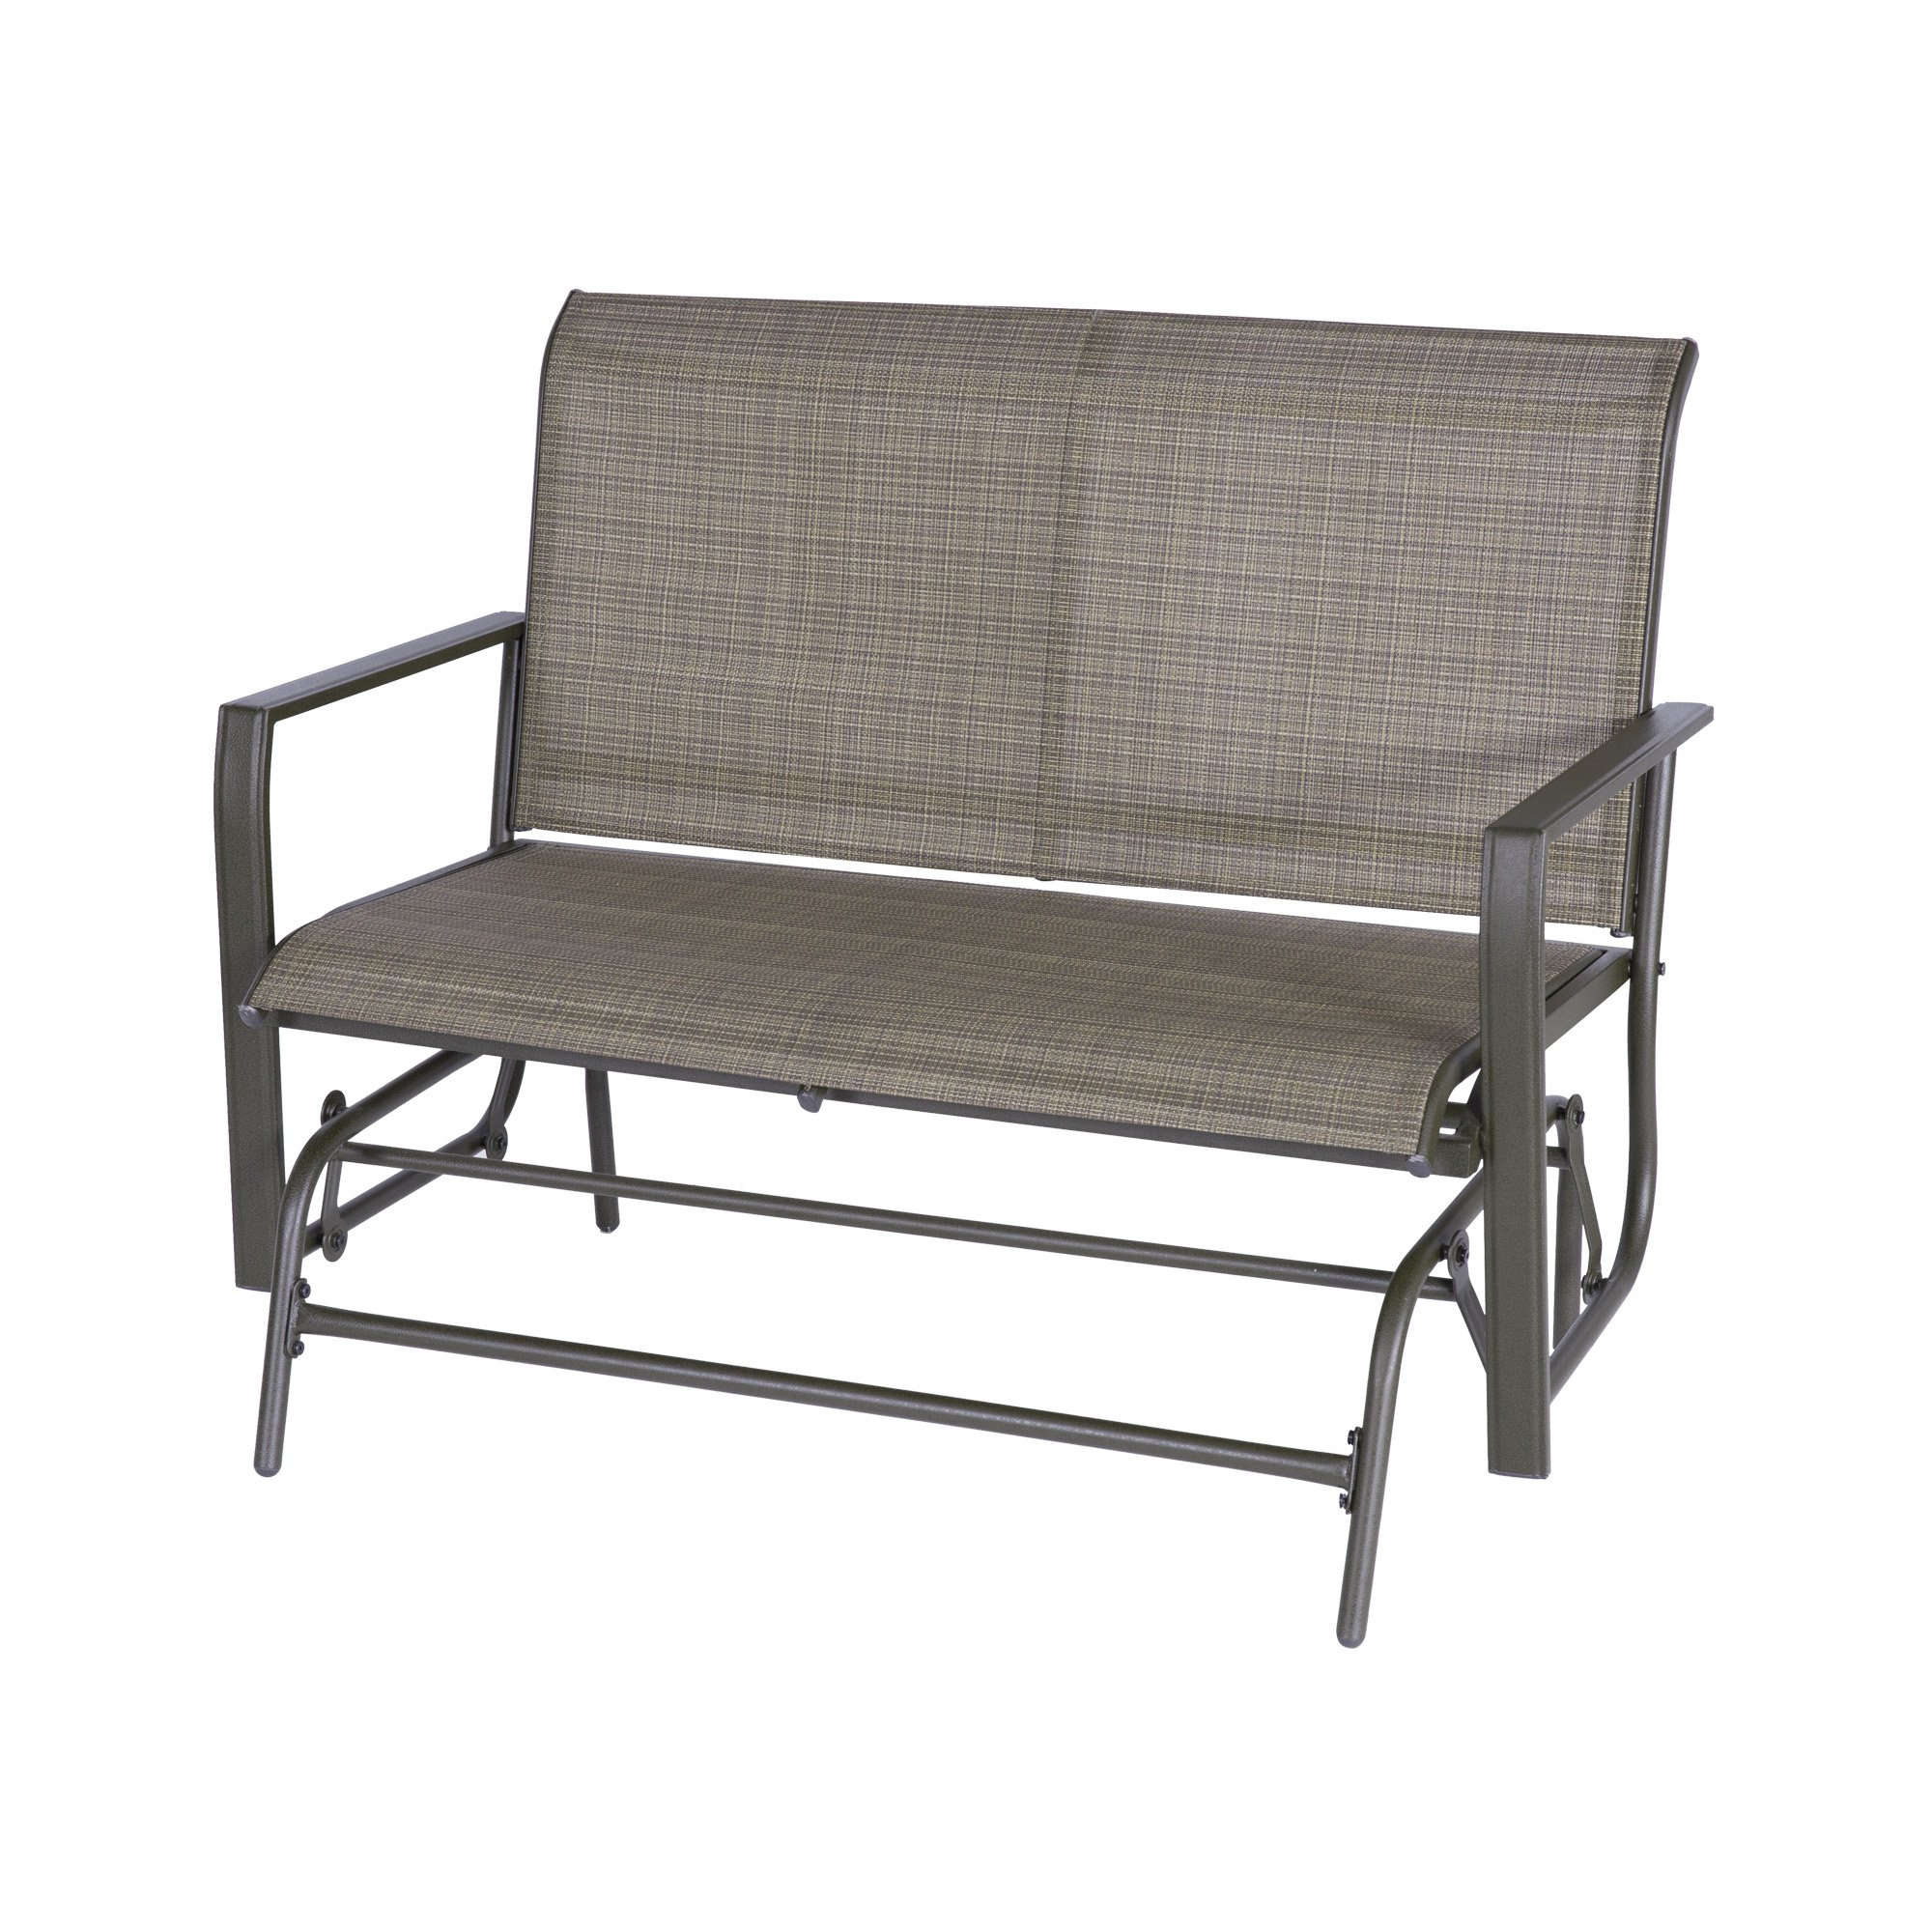 Buy Outdoor Patio Swing Porch Rocker Glider Bench Loveseat Inside Outdoor Patio Swing Porch Rocker Glider Benches Loveseat Garden Seat Steel (View 7 of 25)